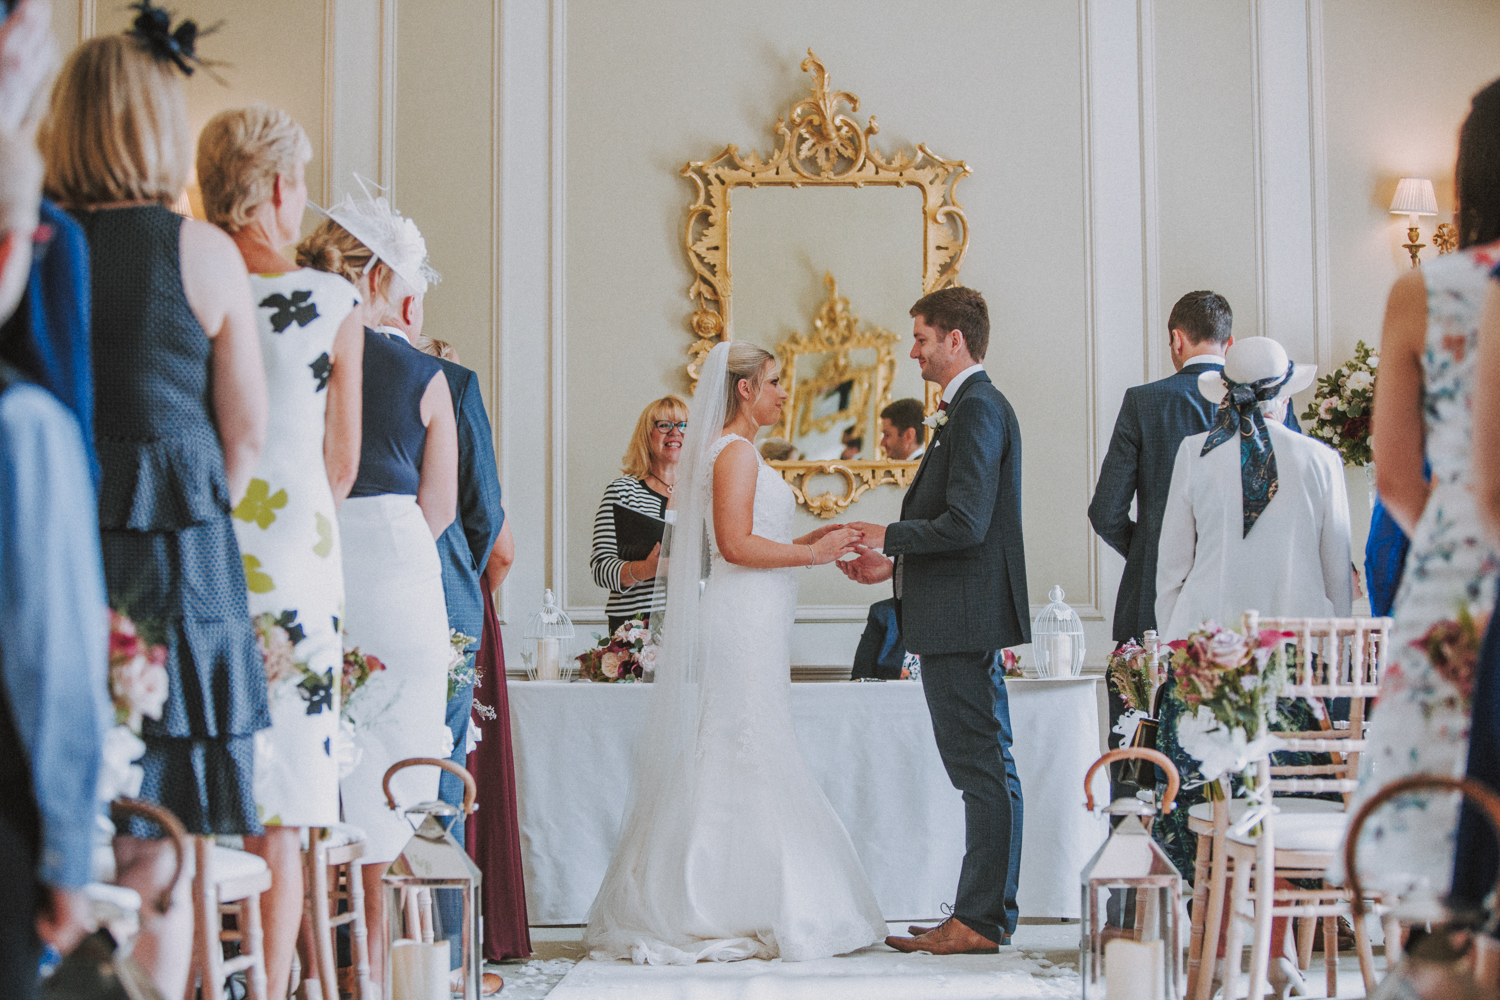 bowcliffe hall, wetherby, yorkshire wedding photography14.jpg